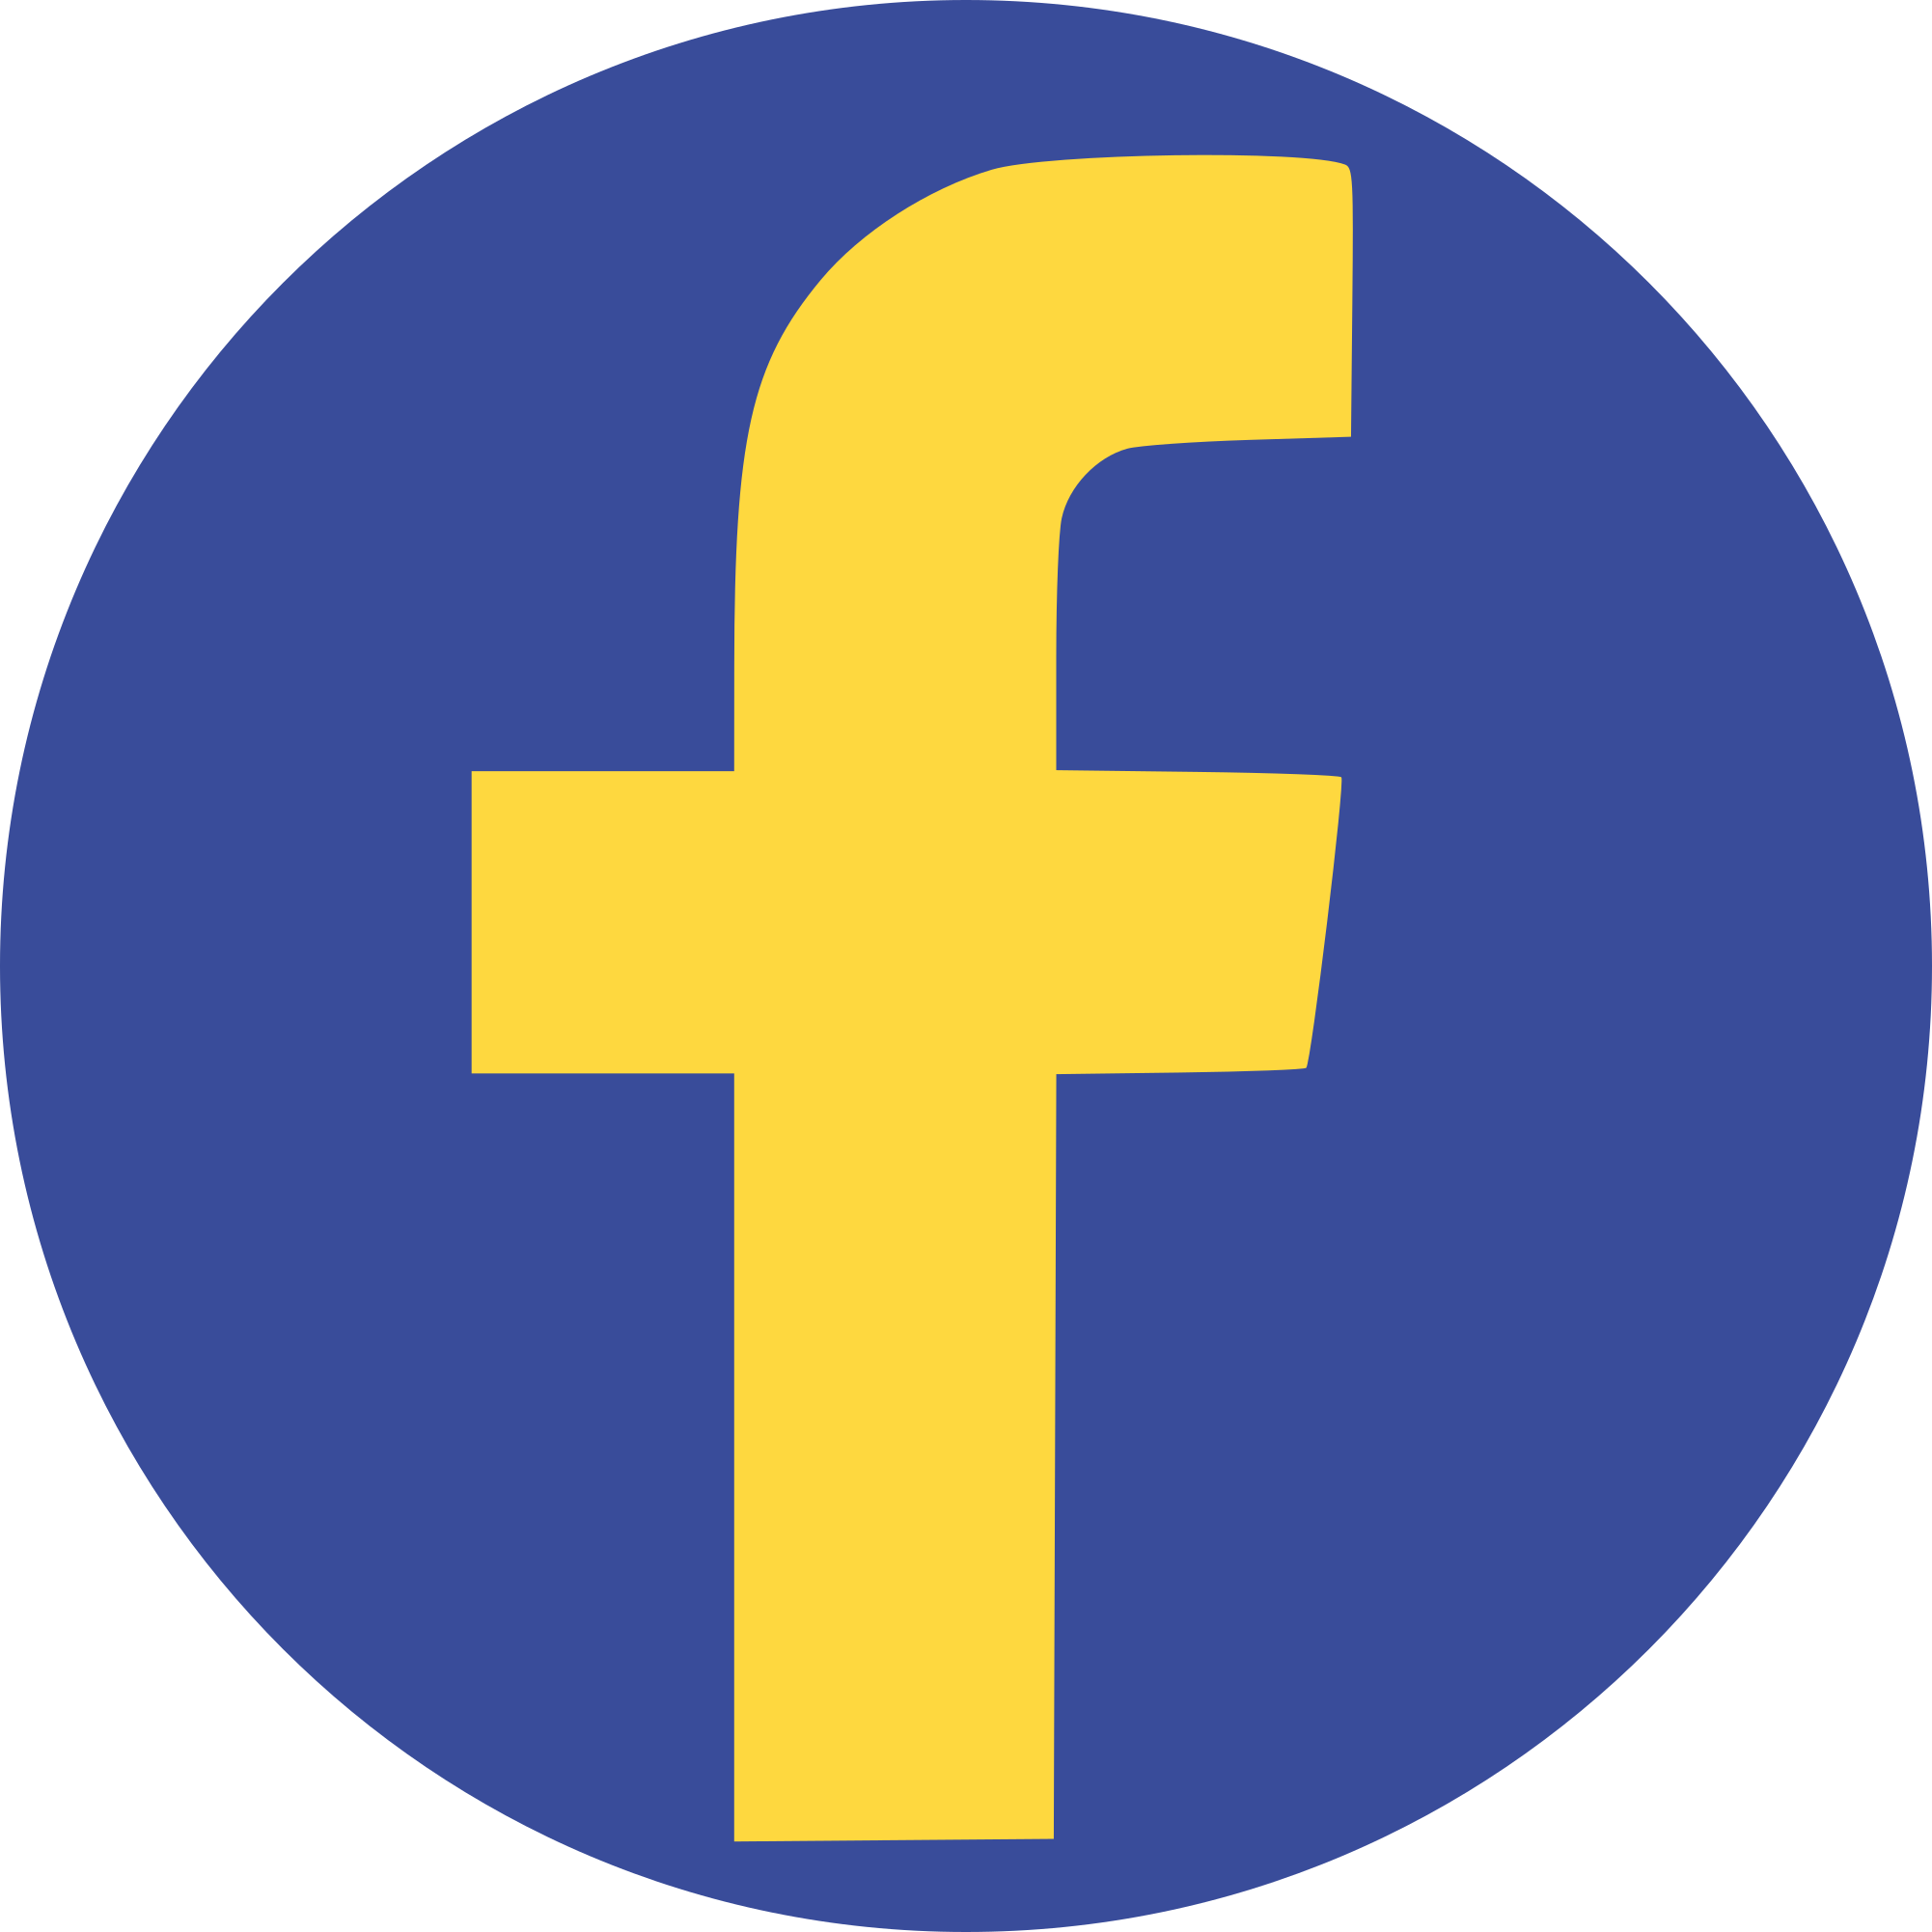 Png facebook. Icon round shared by